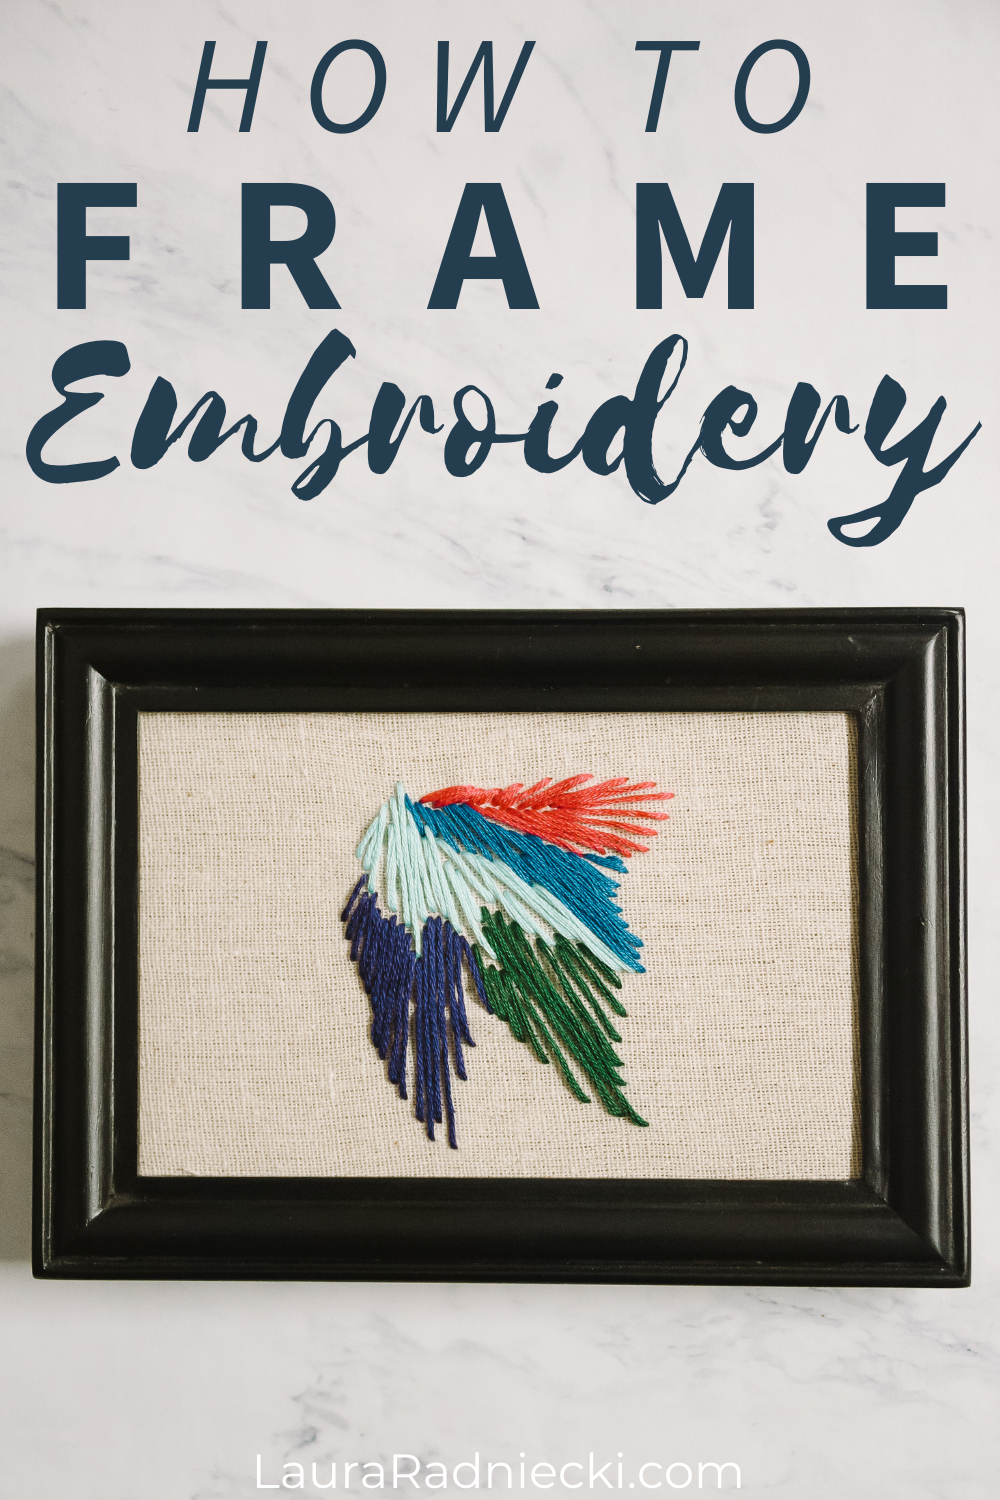 How to Display Embroidery Projects